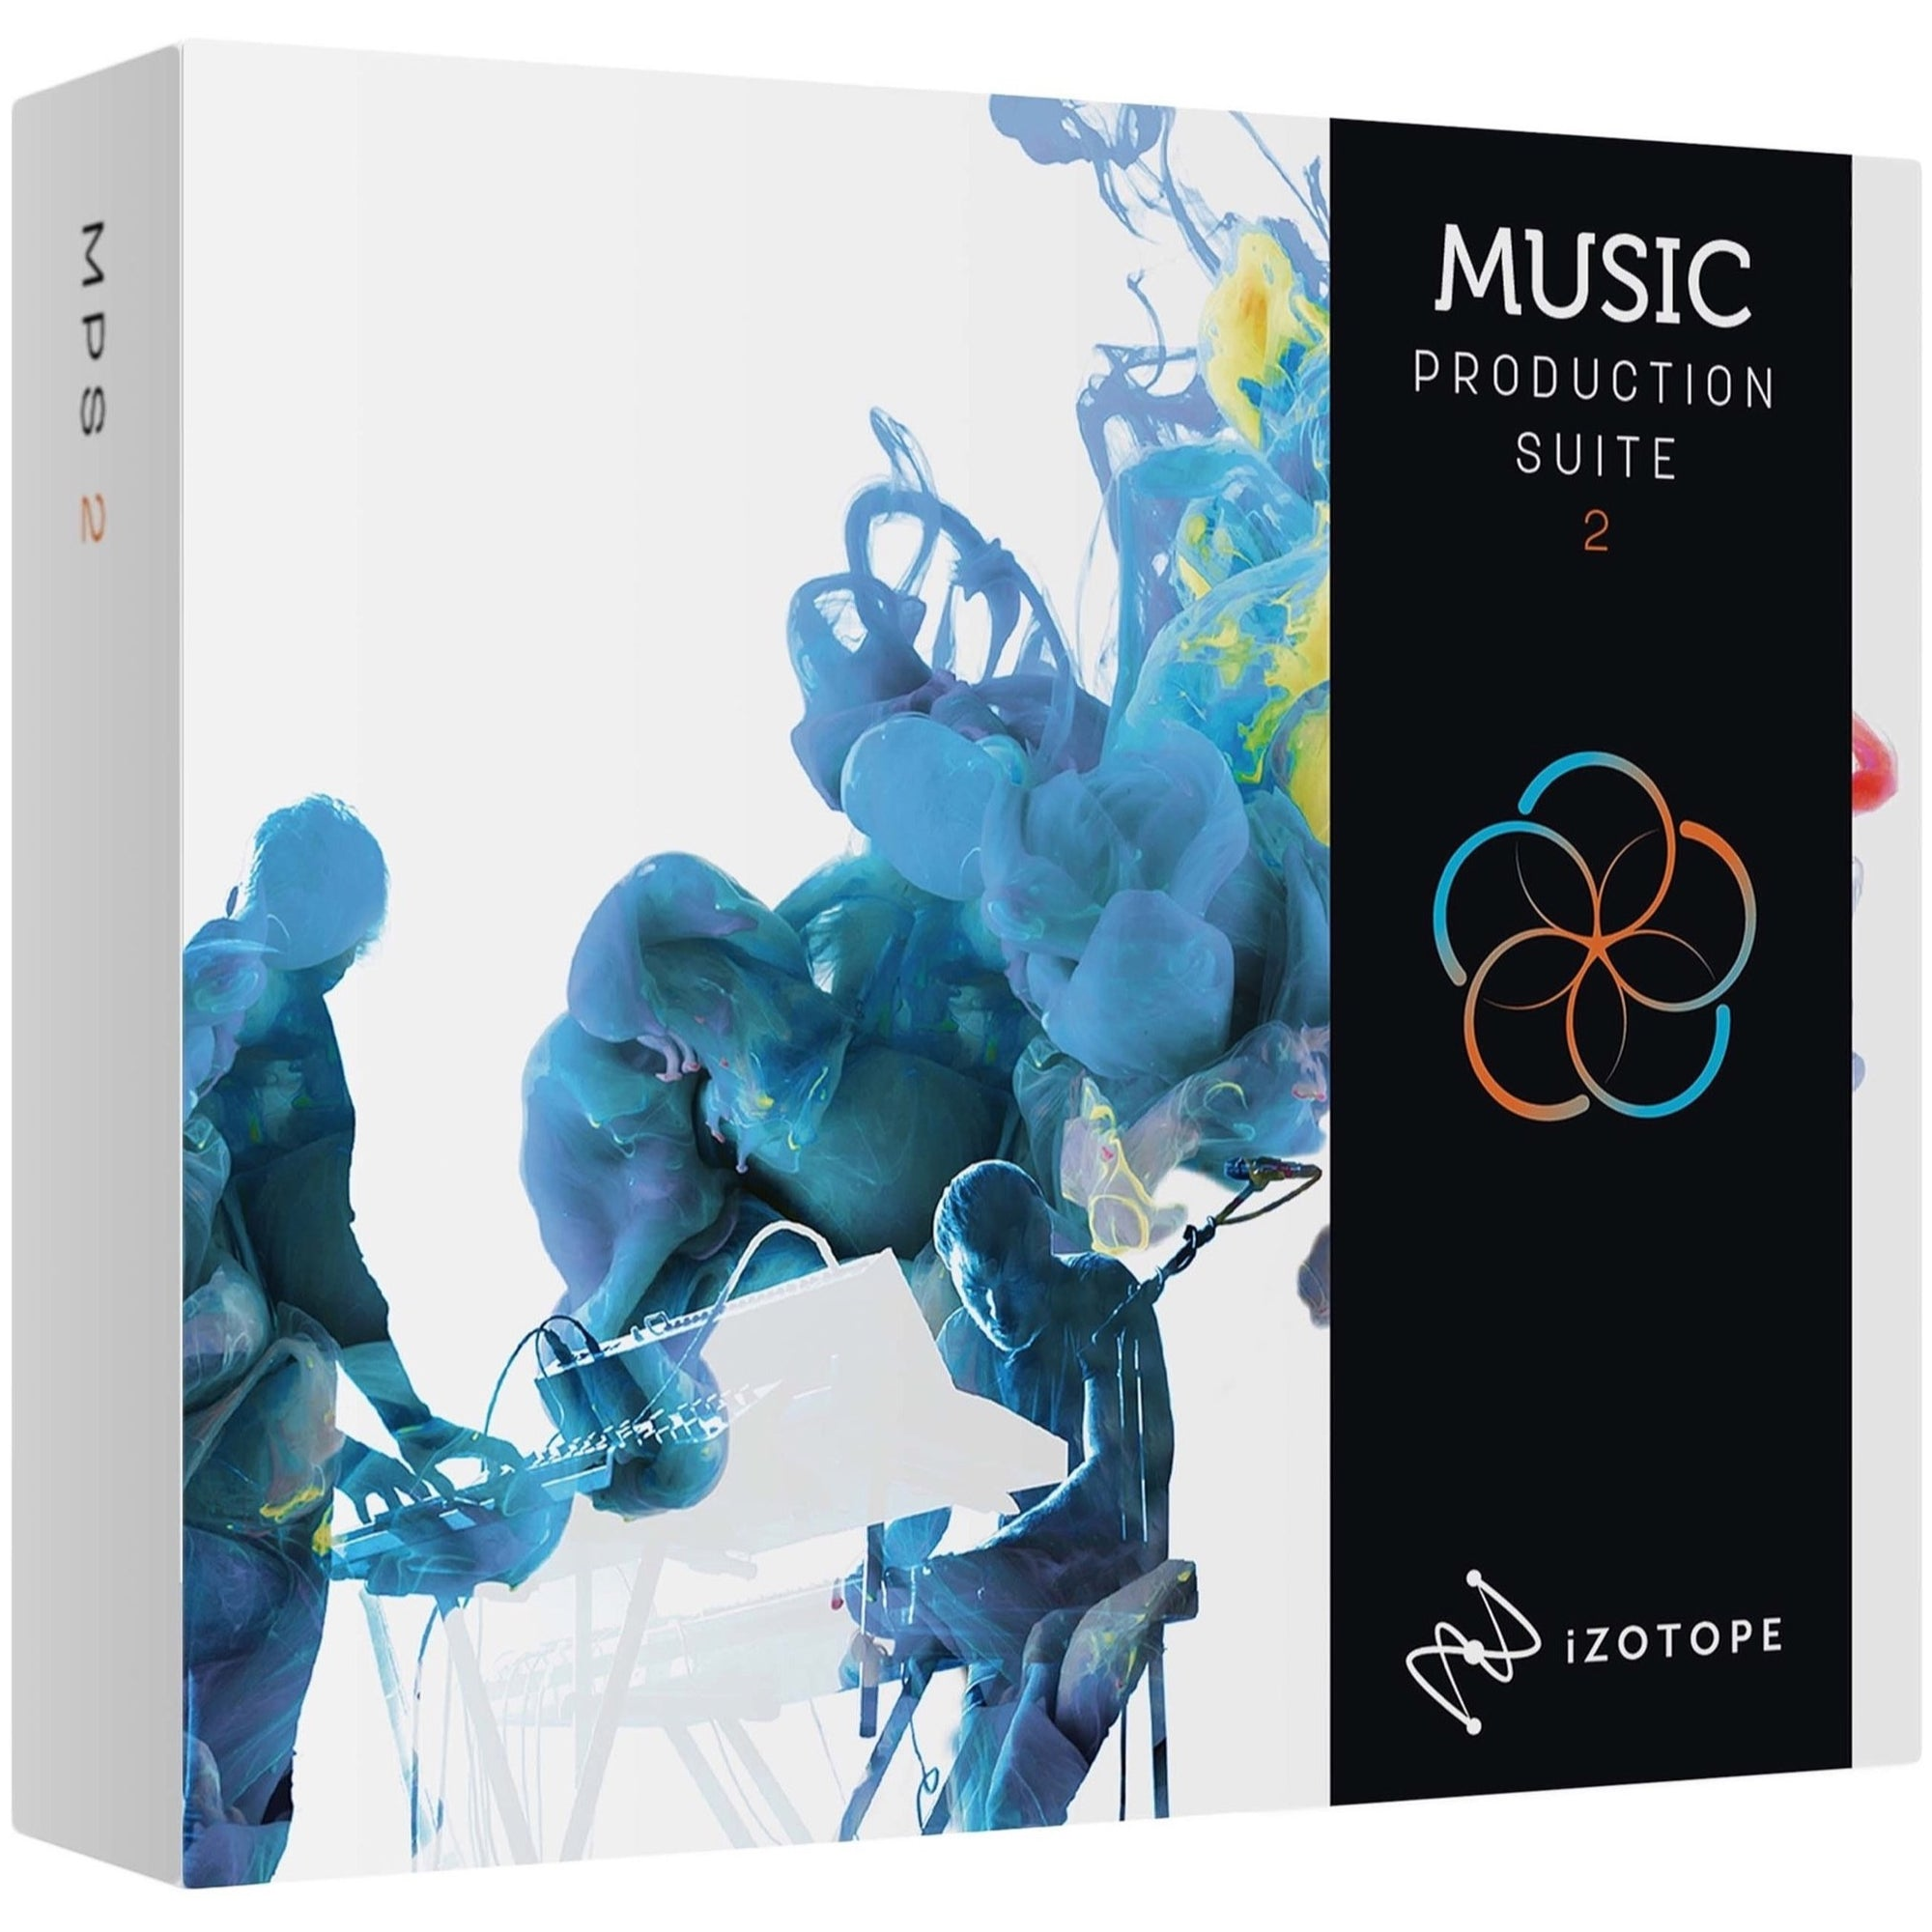 iZotope Music Production Suite 2 Software Bundle